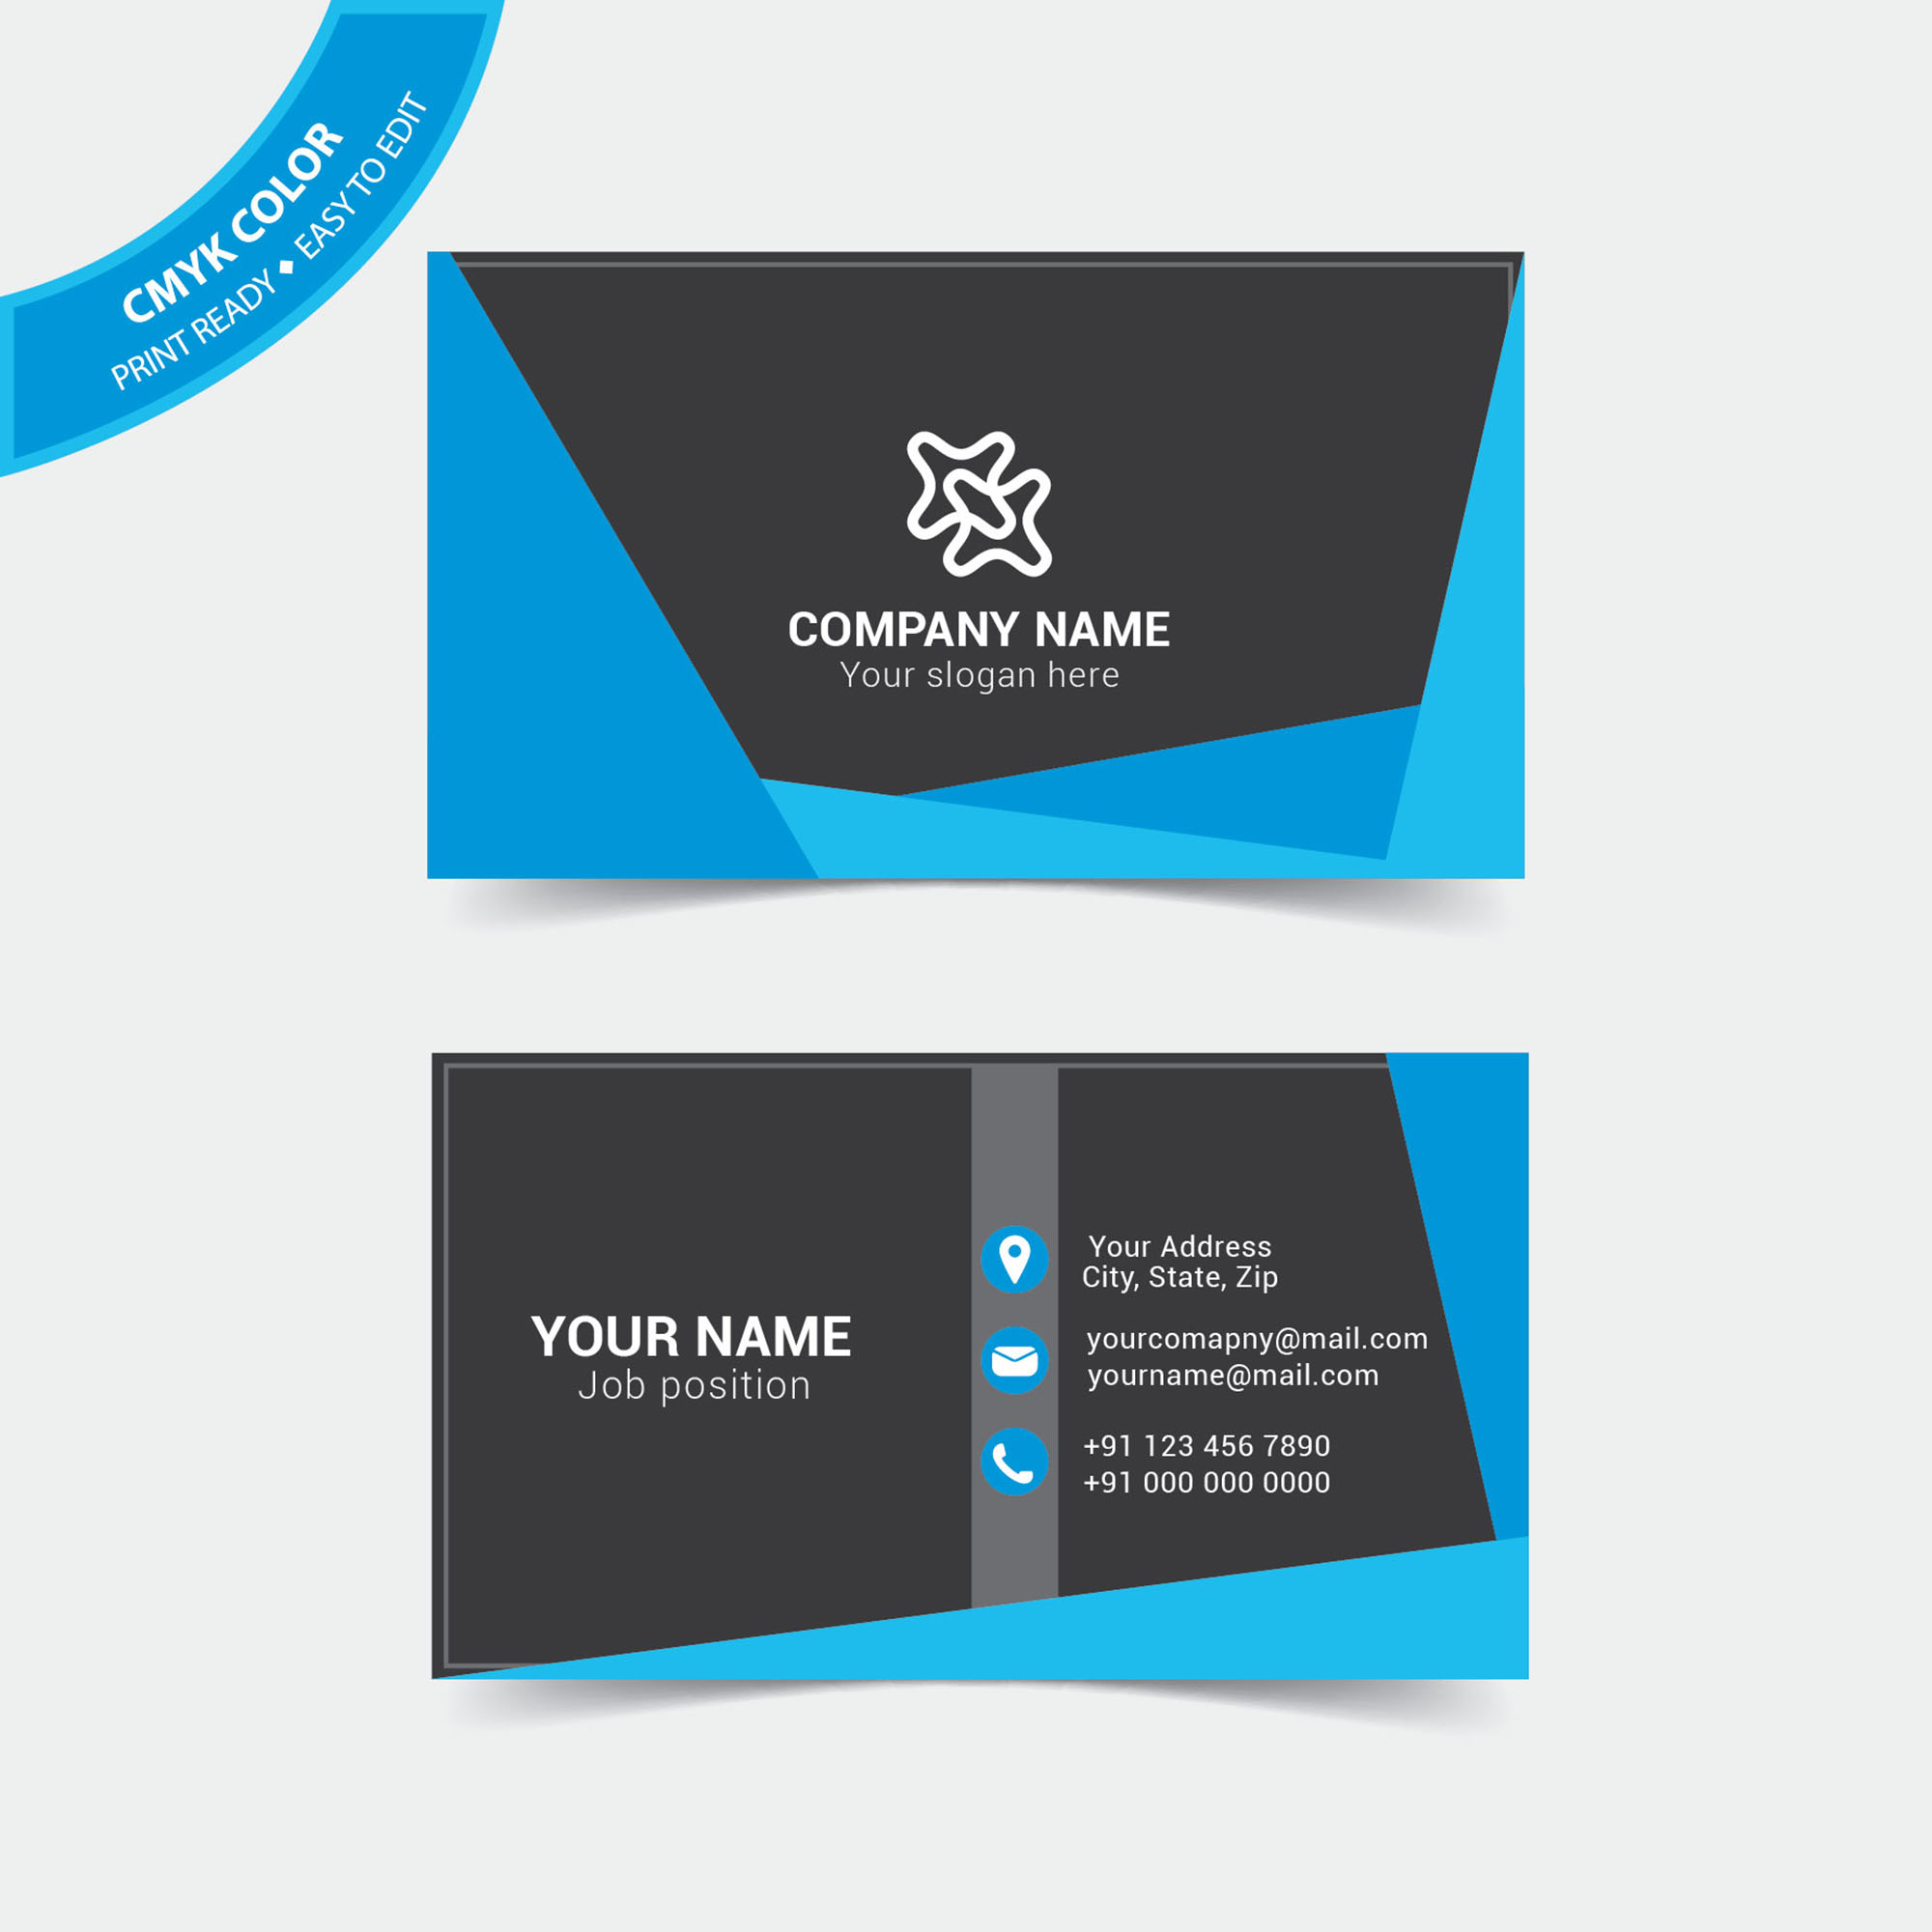 Modern business visiting card design free download wisxi abstract business card design business creative graphic layout template accmission Image collections